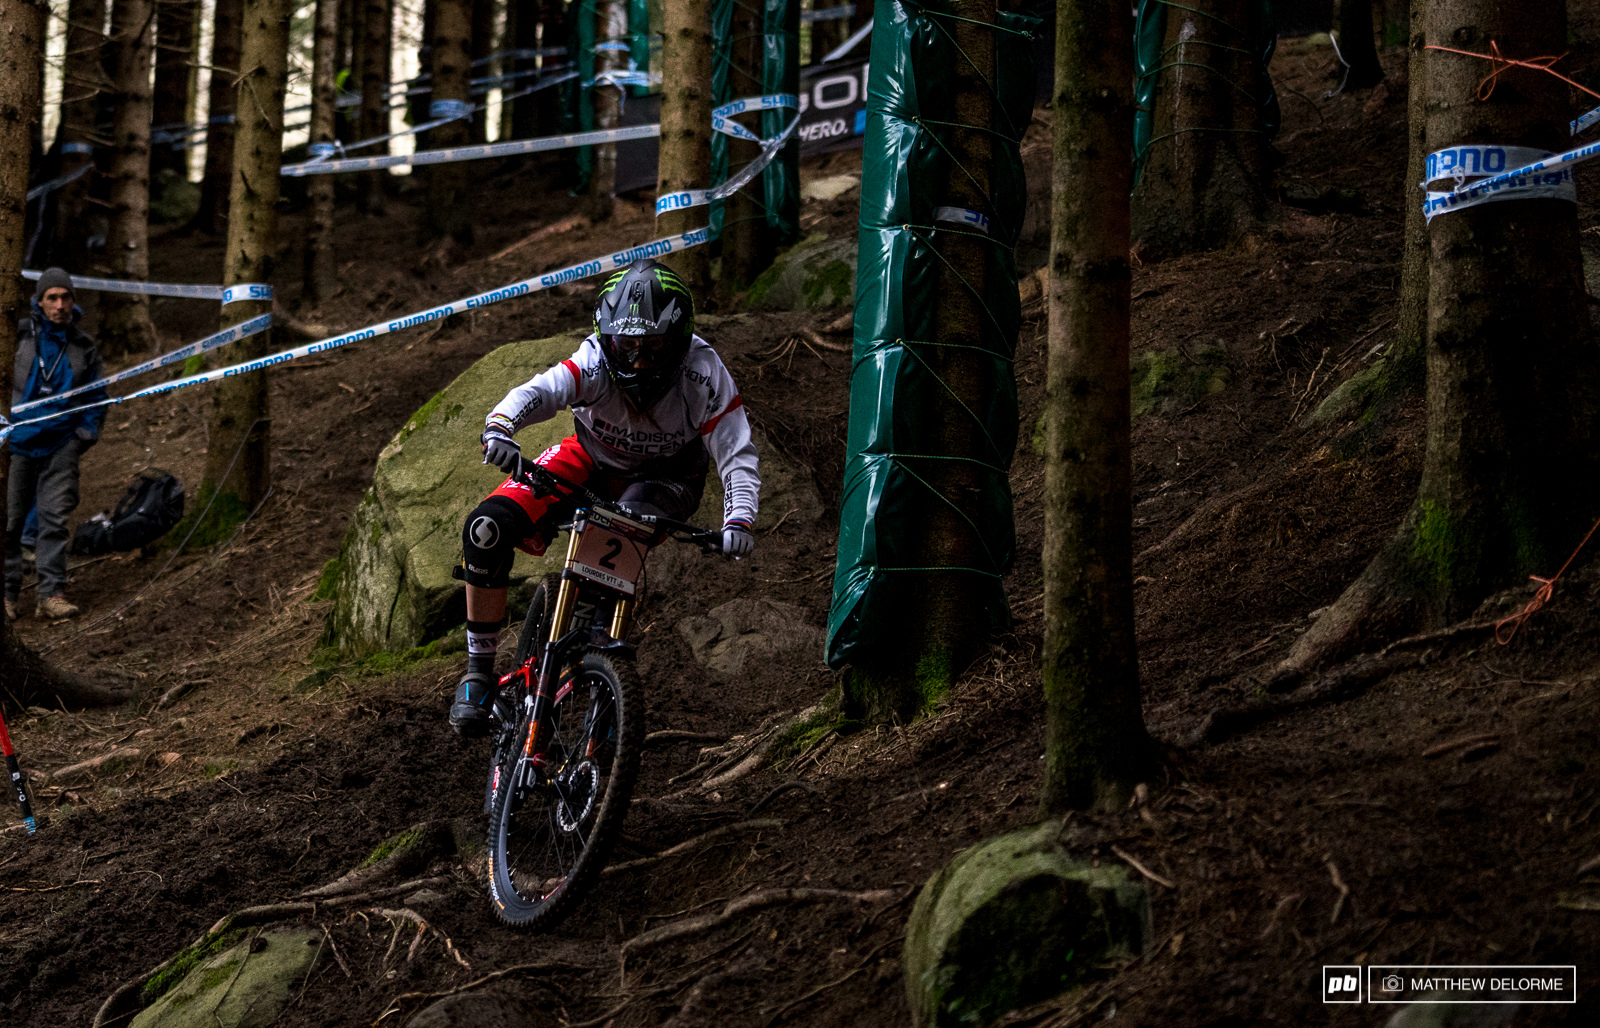 Manon Carpenter throws a shape while riding to a third place qualifying result today.